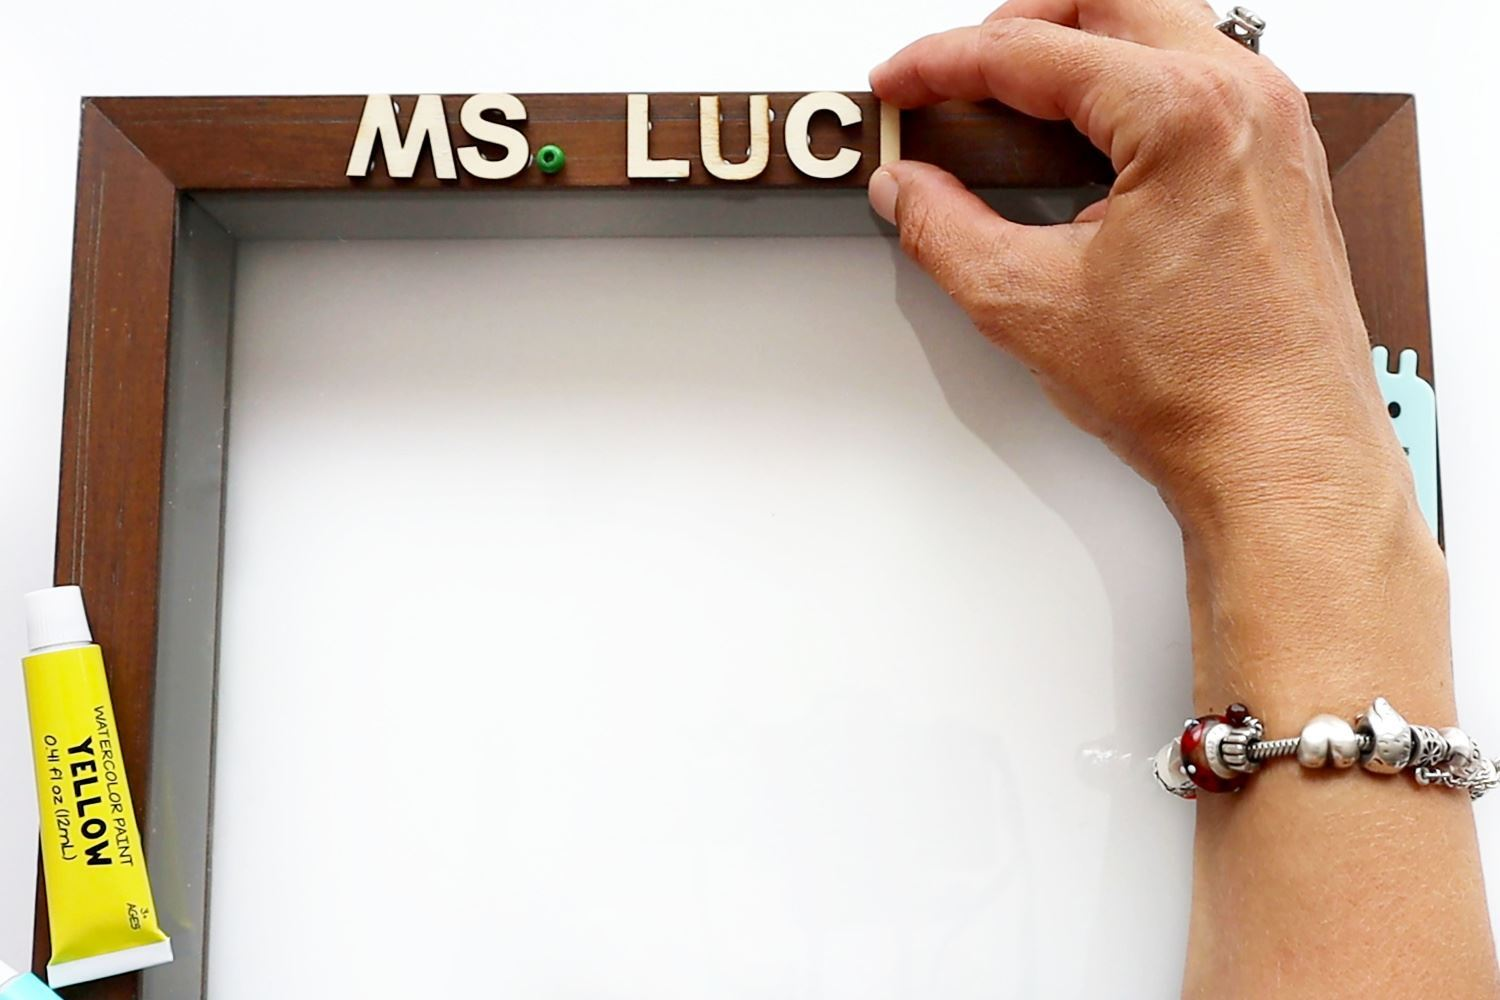 Glue letters in place on frame